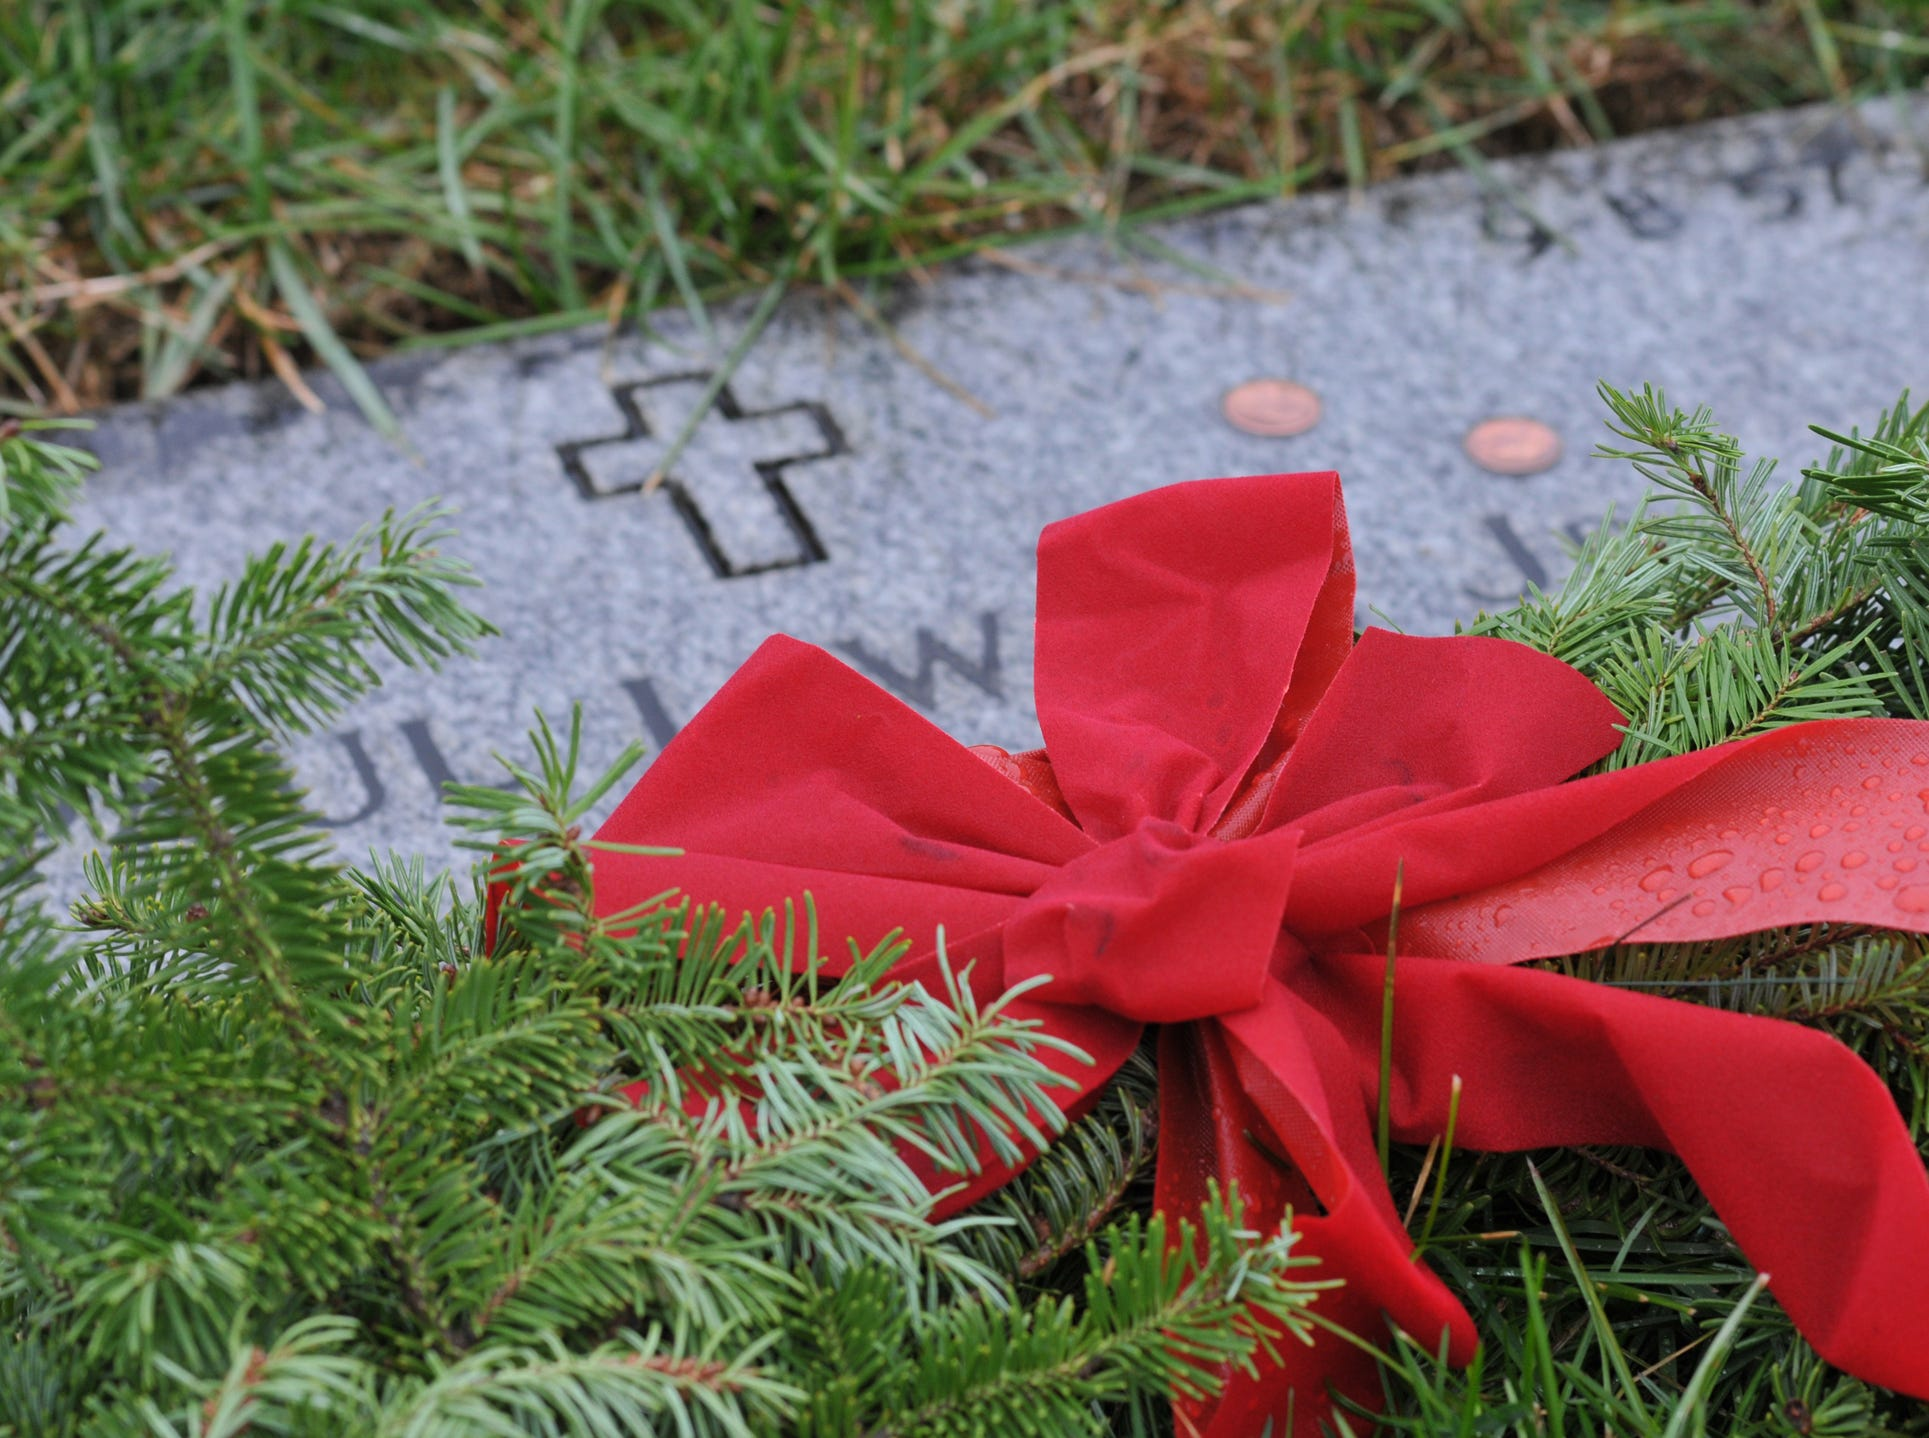 The Wreaths Across America ceremony held at Indiantown Gap National Cemetery on December 15, 2018. Indiantown Gap National Cemetery supporters met their goal this year sponsoring more than 40,000 wreaths, enough to place one on every veteran's grave.